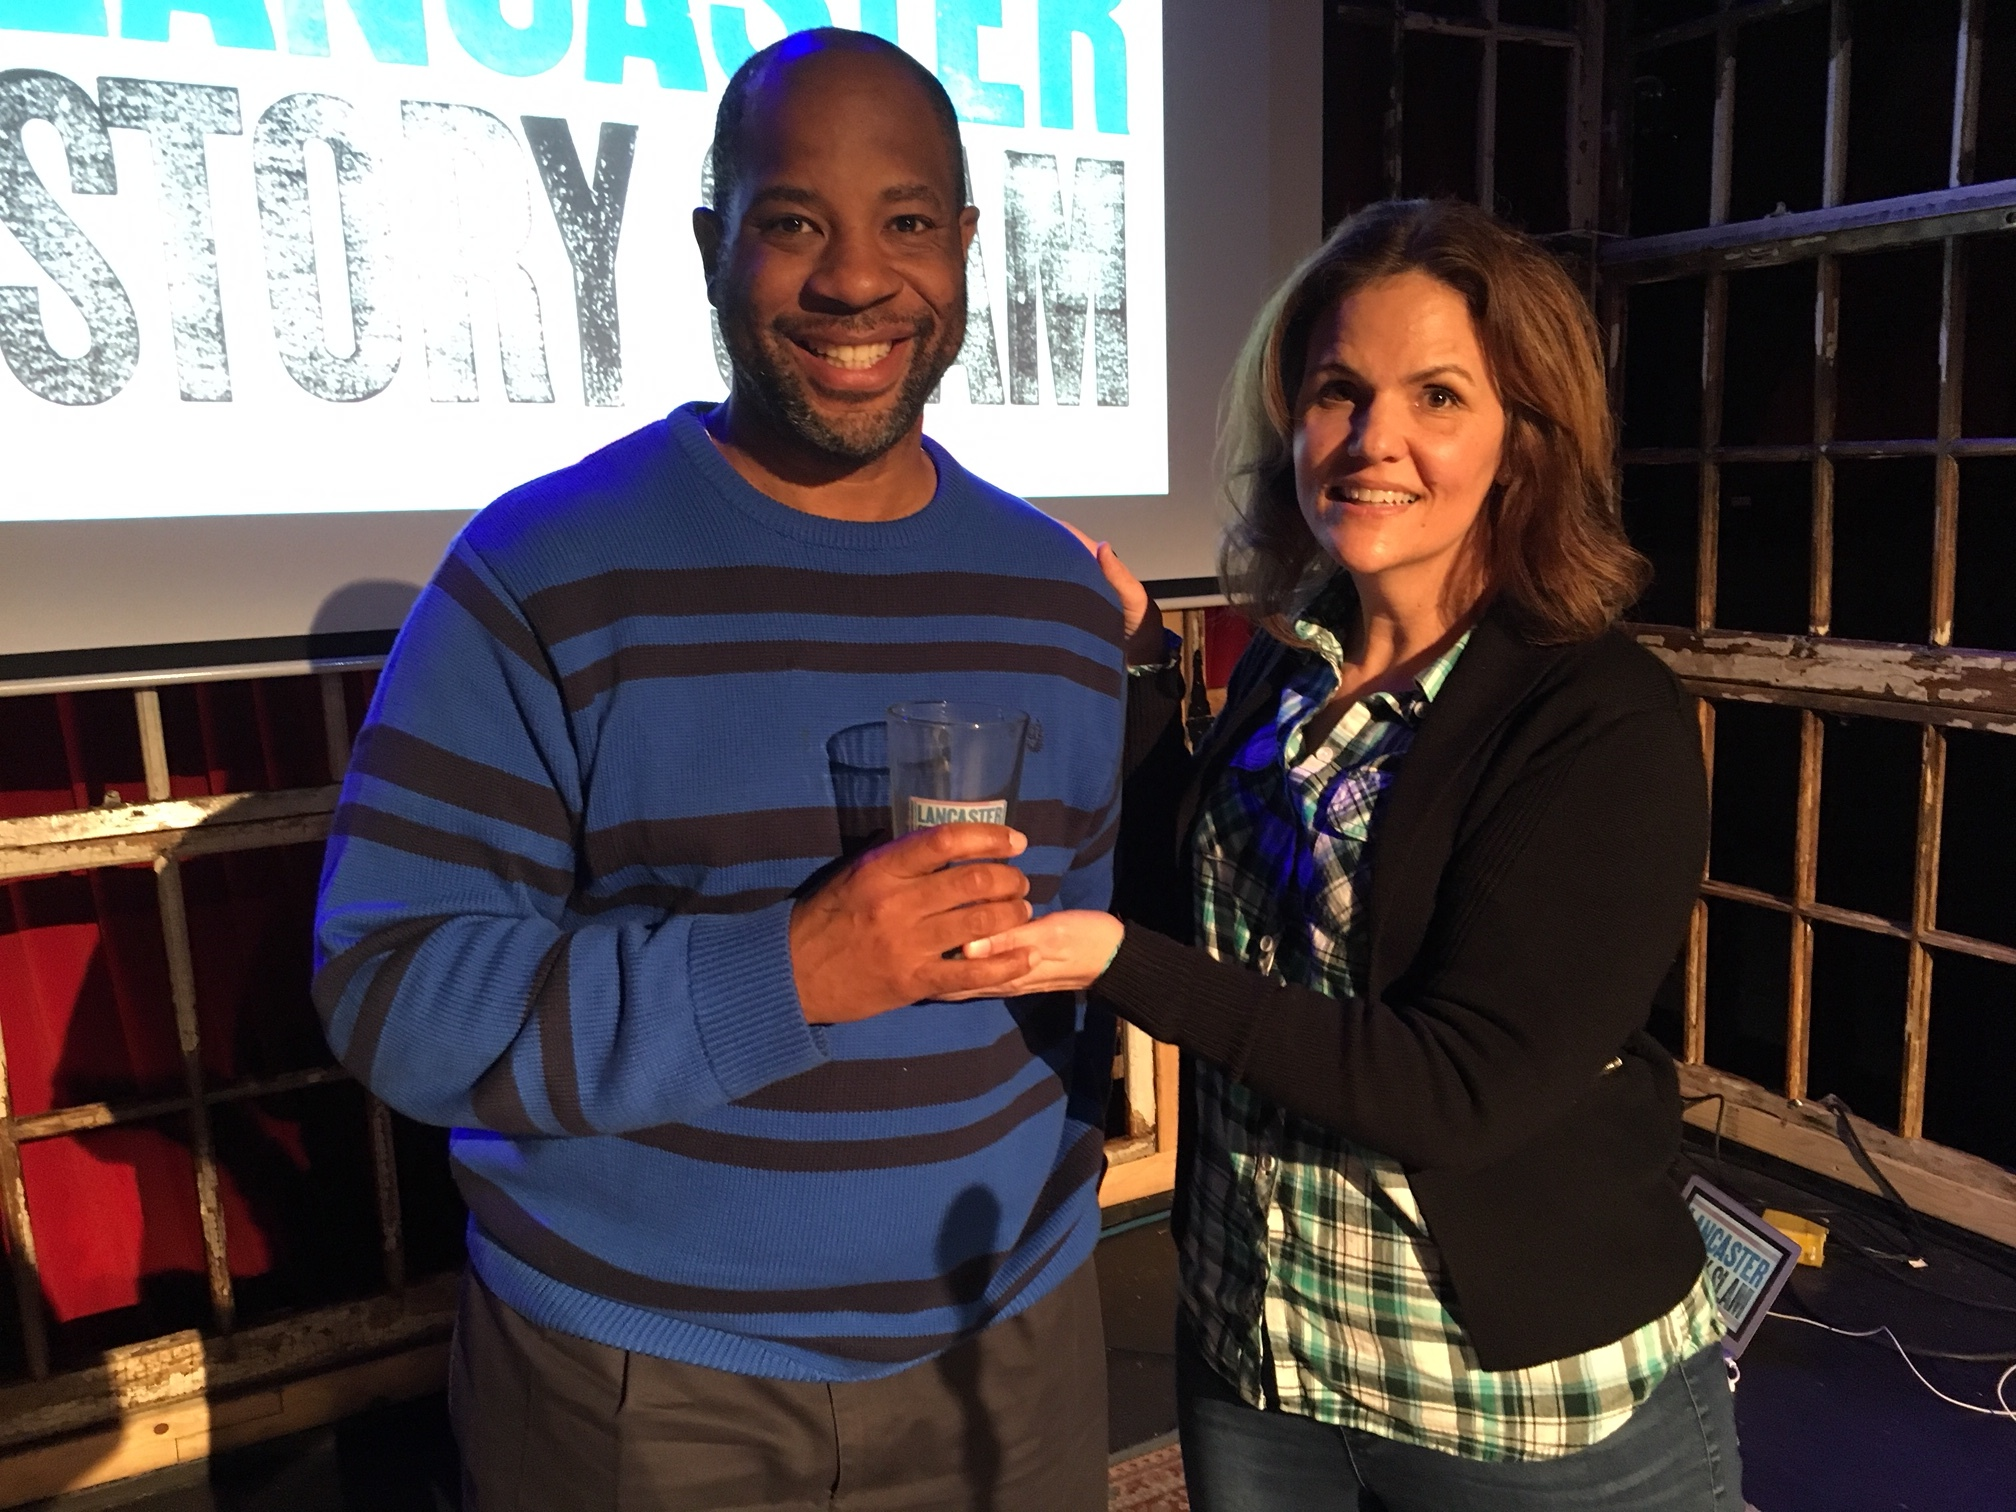 Winning Storyteller Michael Evans poses with emcee Luanne Sims